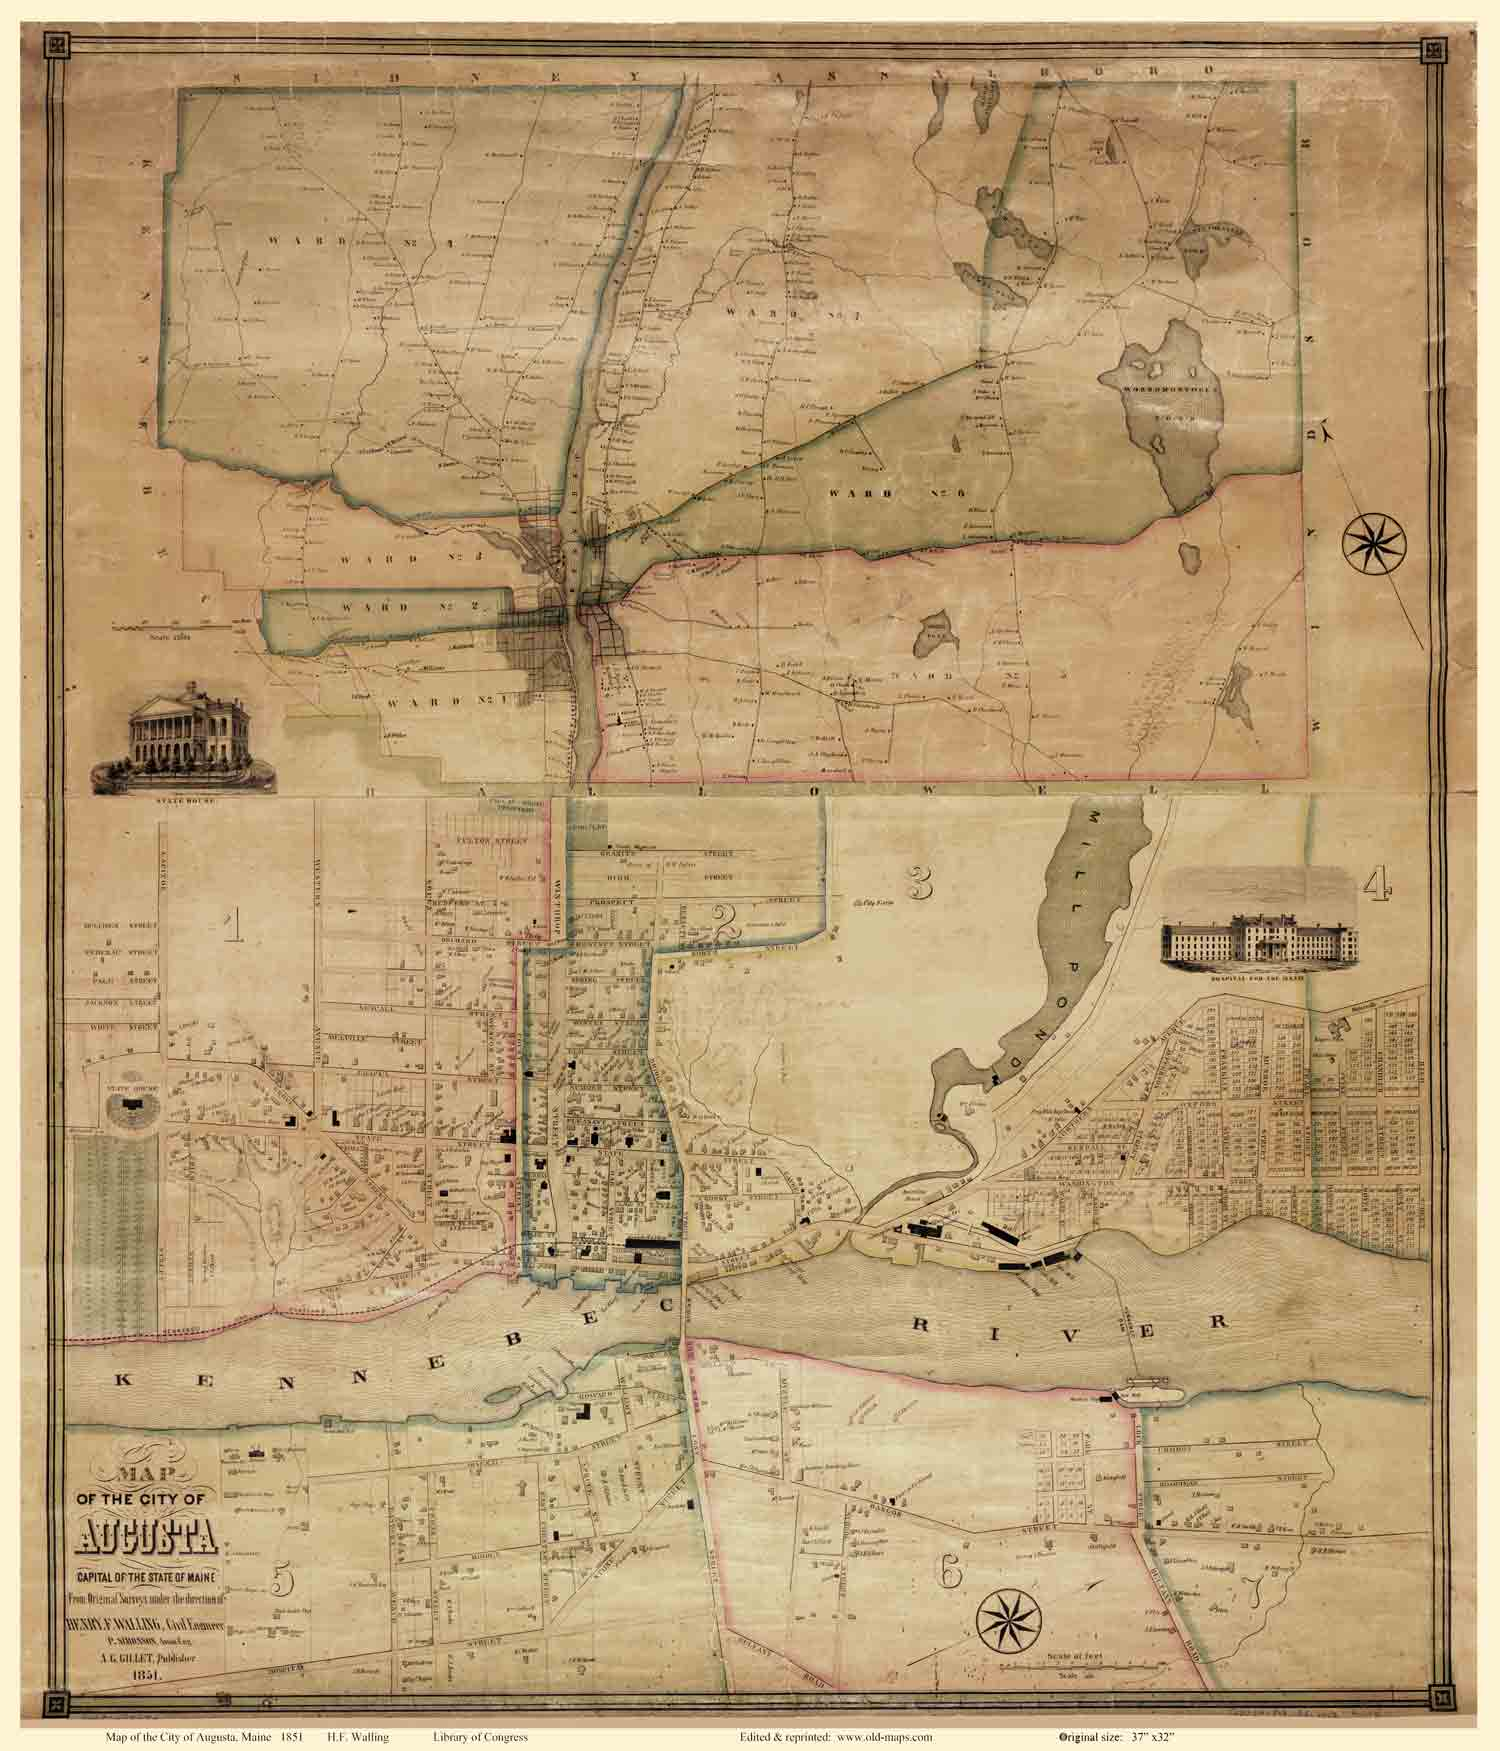 Beers1851 Map Of Augusta Maine HF Walling